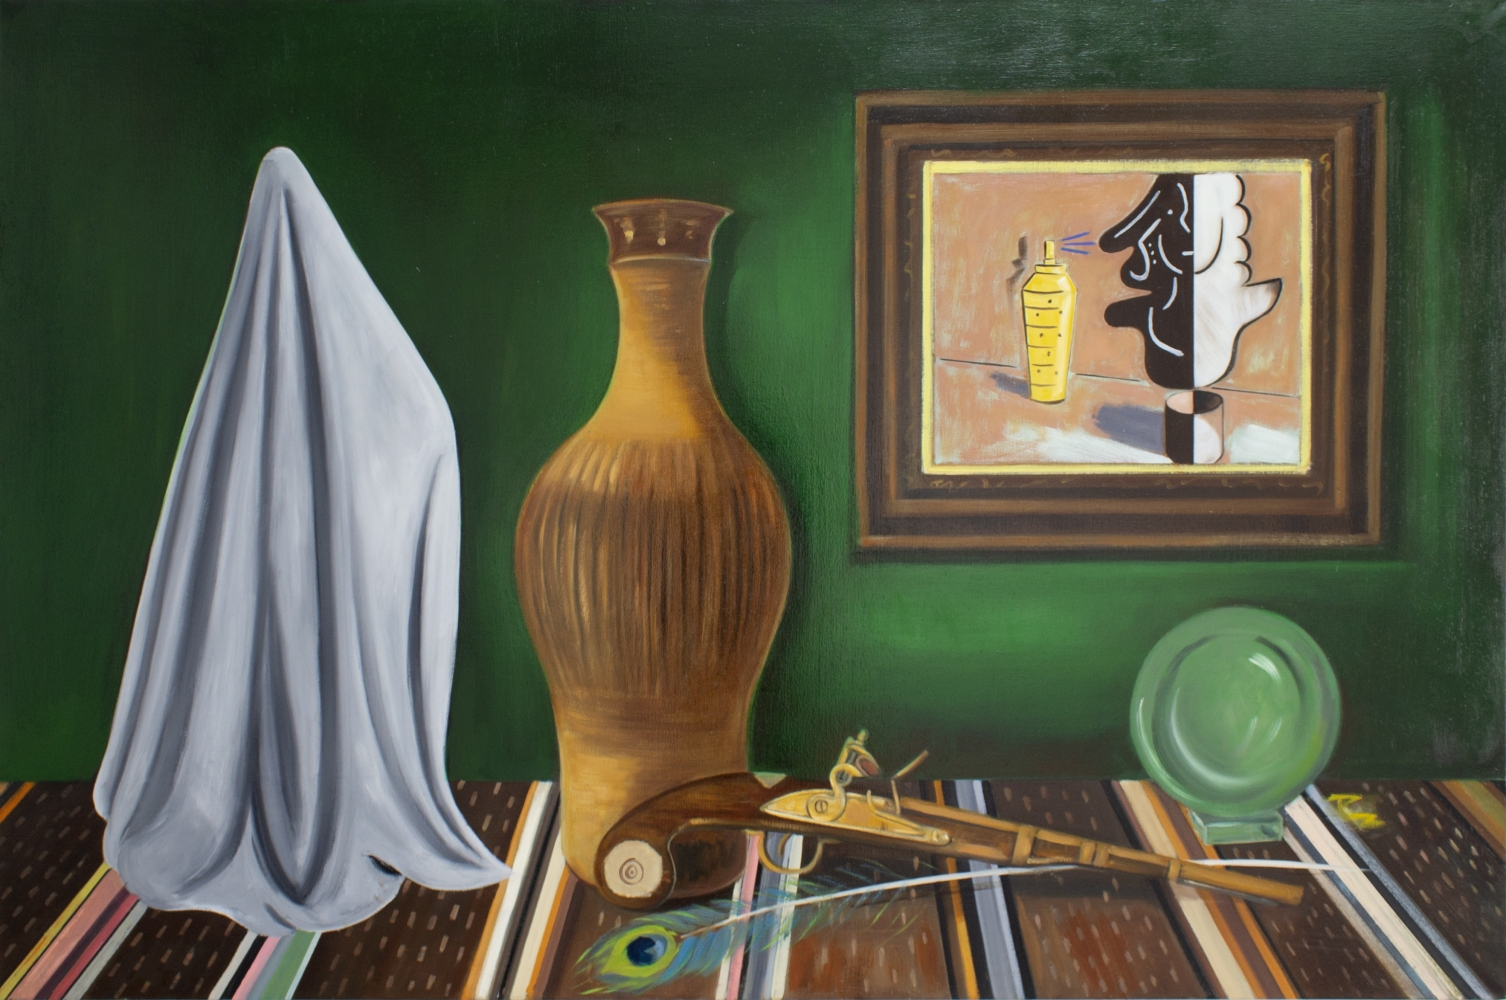 Raul Guerrero, Still Life with Sarape and Crystal Ball, 2012